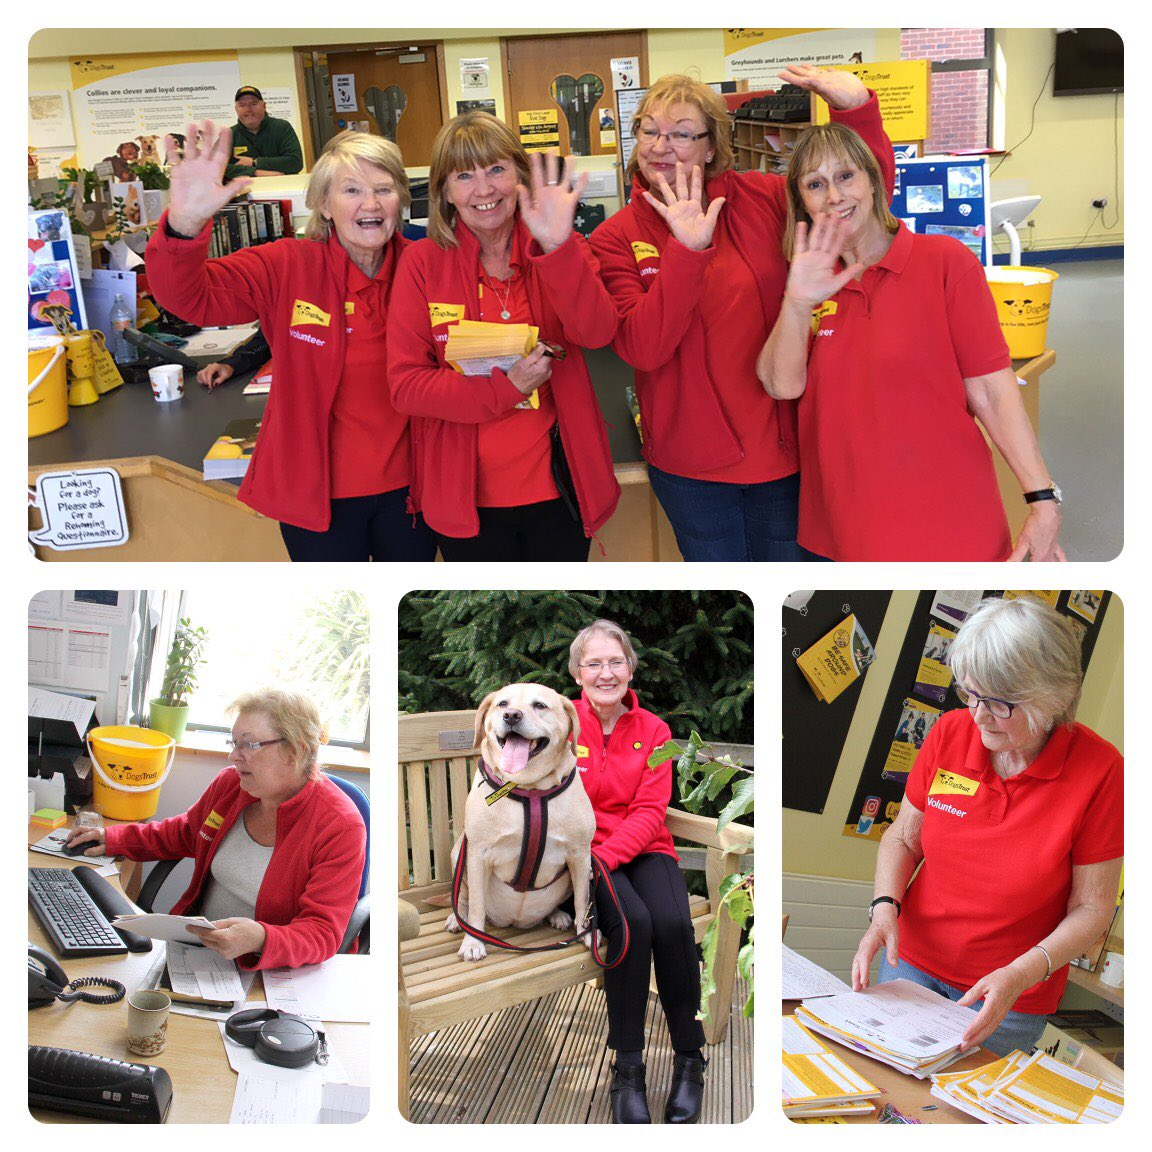 💛#Thankyou so much to our FABULOUS Admin #Volunteers!💛  They make a huge difference our centre. We think they're wonderful and can't thank them enough!  #volunteersweek #nationalvolunteersweek #tuesdaymotivation #charityvolunteers #rescuedogs  @DogsTrust